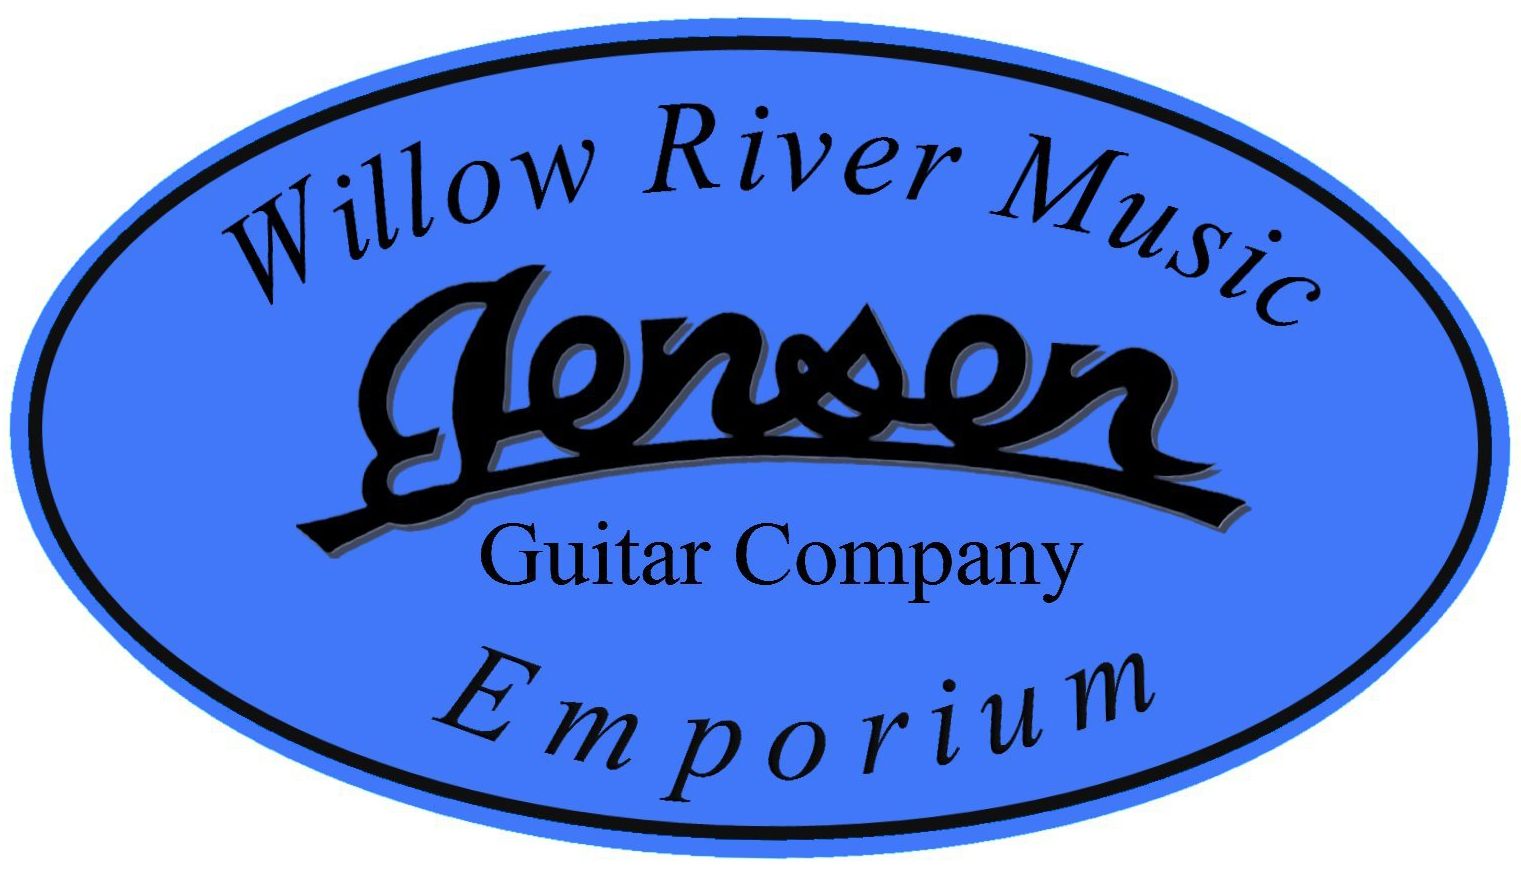 Jensen Guitar Company and Willow River Music Emporium